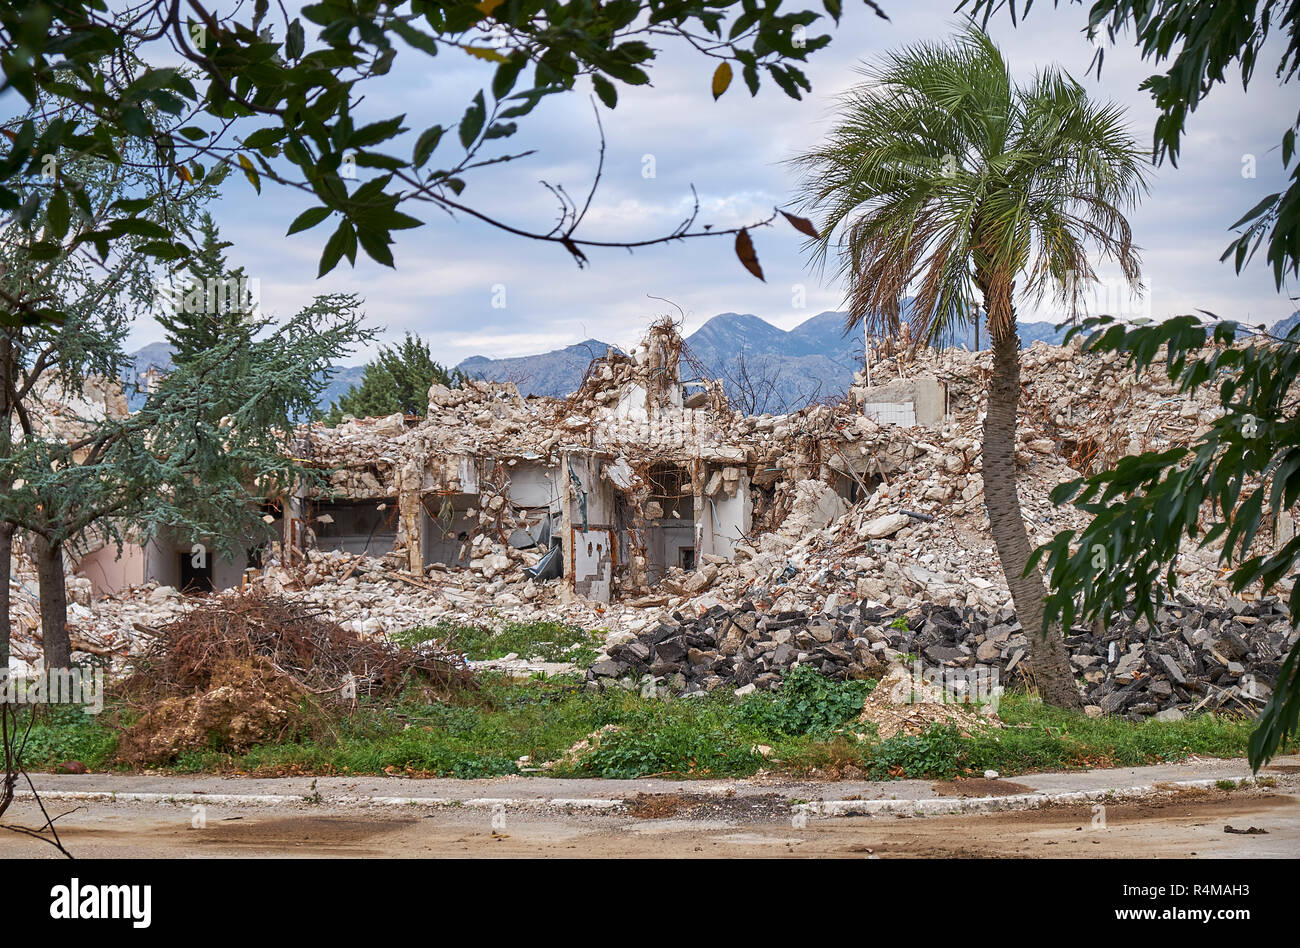 Kotor, Montenegro, November 15, 2018. Rubbles remain of former Fjord Hotel Kotor, demolished to make place for new project, losing a brutalist icon - Stock Image